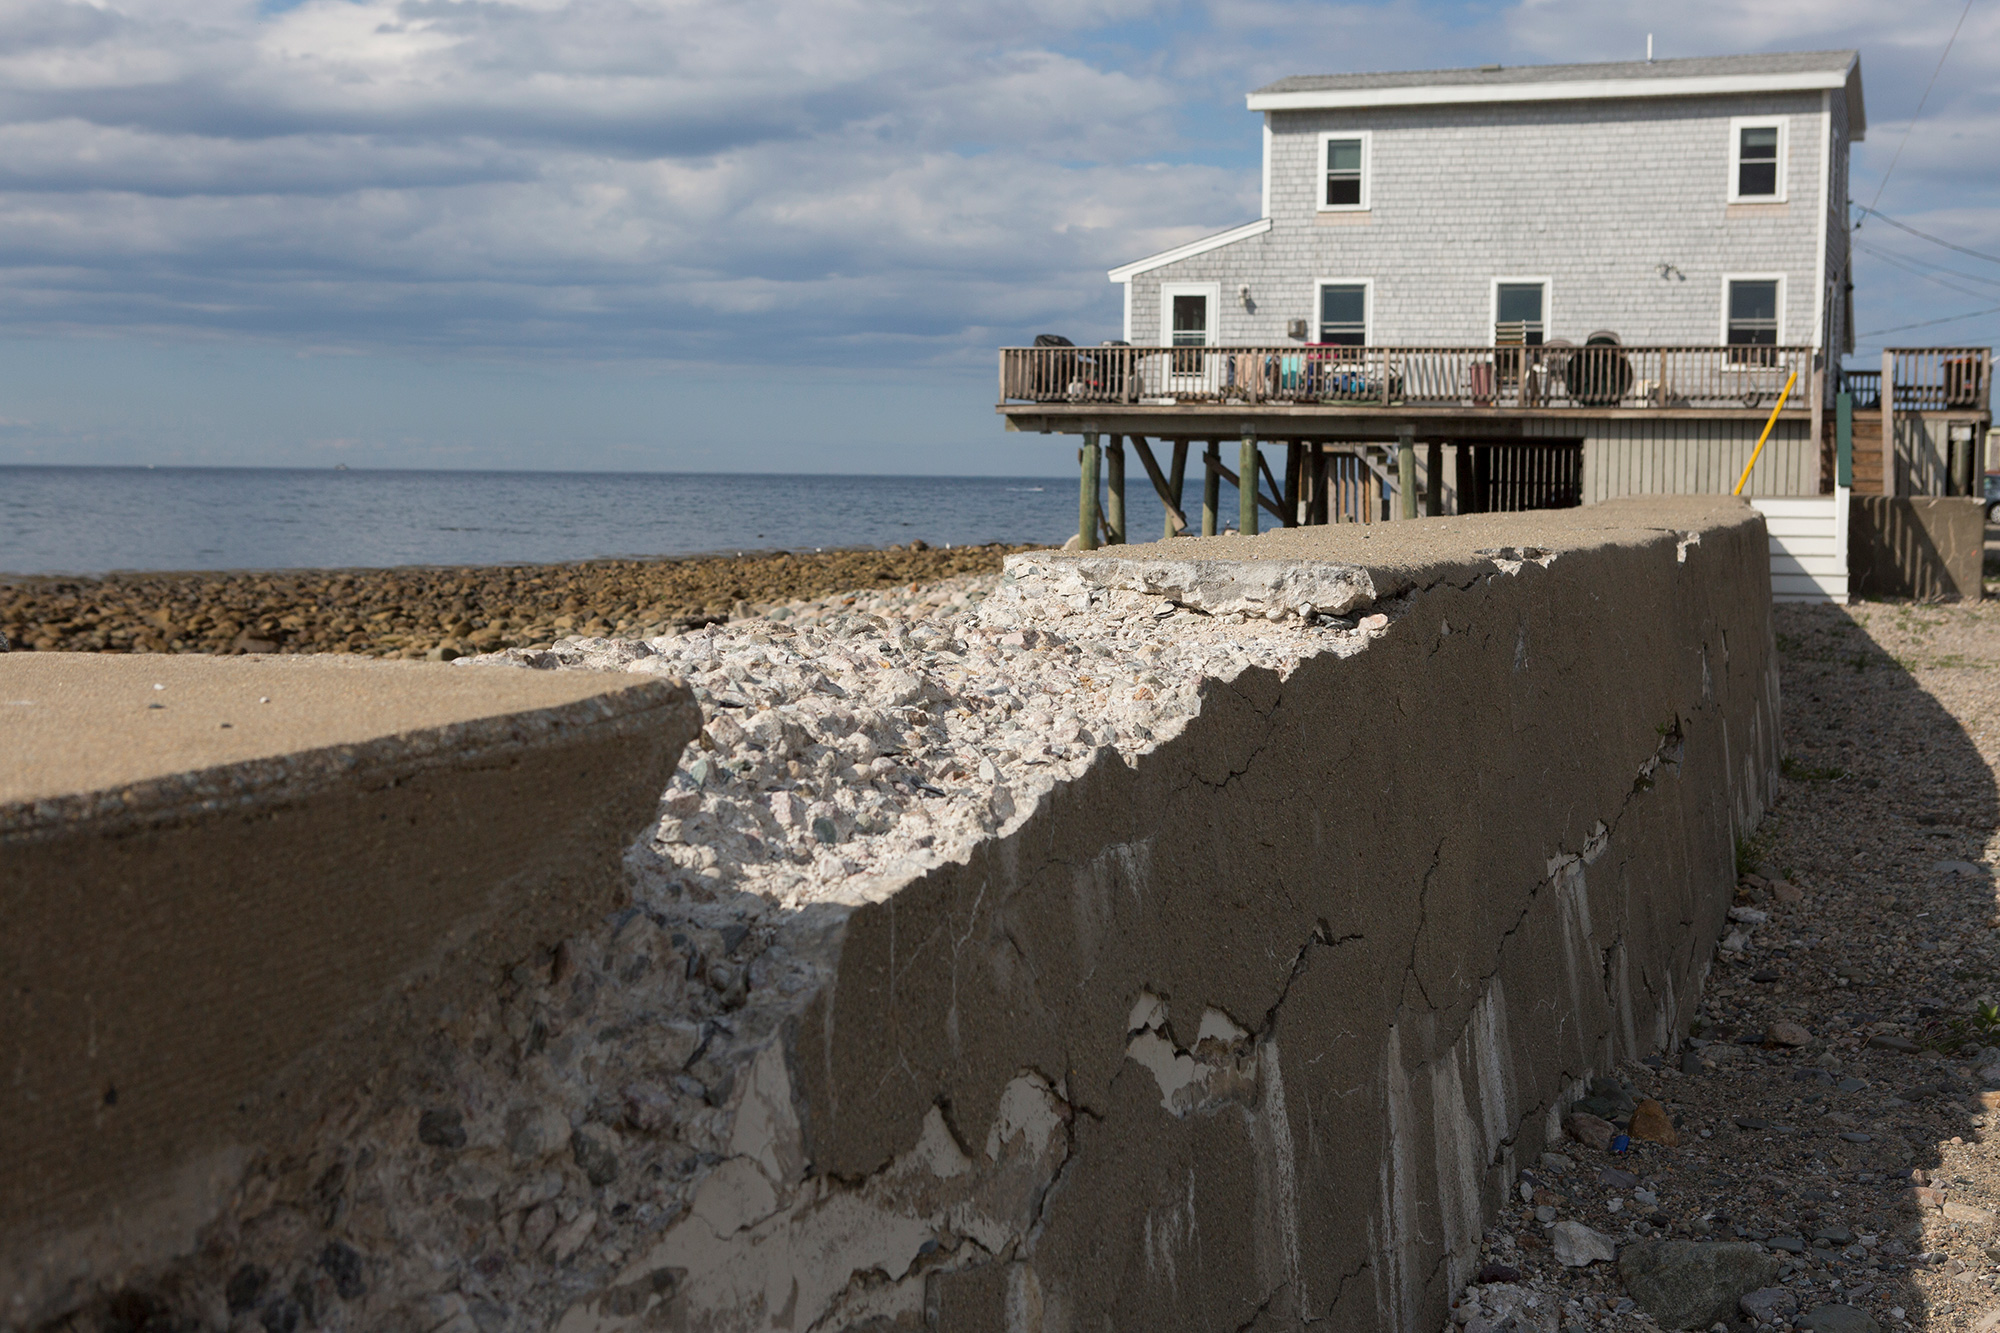 Next to a raised home in Scituate, a seawall crumbles—the result of years of ocean waves pummeling the shores. Most coastal towns along the Massachusetts South Shore have man-made sea walls in place to help protect the ocean front from storm surges. But recent storms have breached the seawalls and weakened them for future storms. (Photo by Lauren Owens Lambert/GroundTruth)